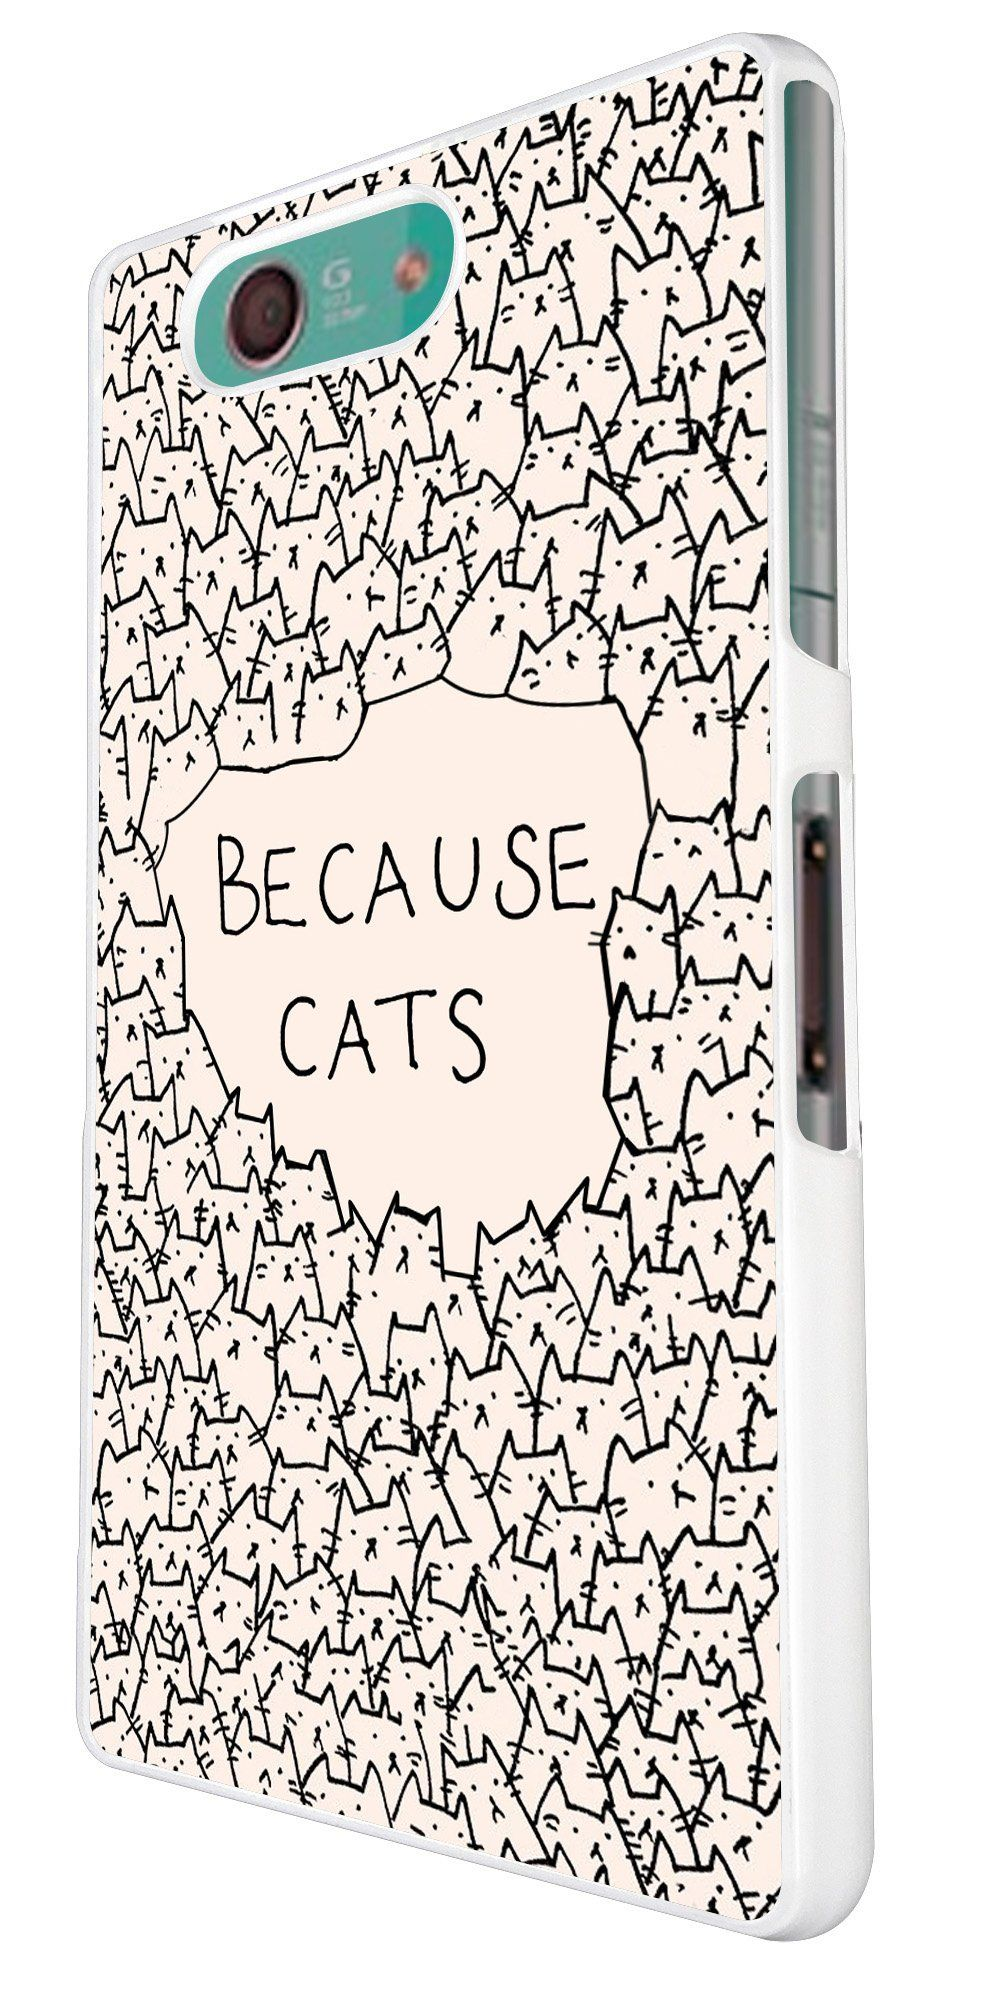 Sony Xperia Z3 Compact Mini Because Cats Collage Sketch Multi Cats Cute Funky Design Fashion Trend Hulle Case Back Cover Meta Sony Xperia Z3 Sony Xperia Sony